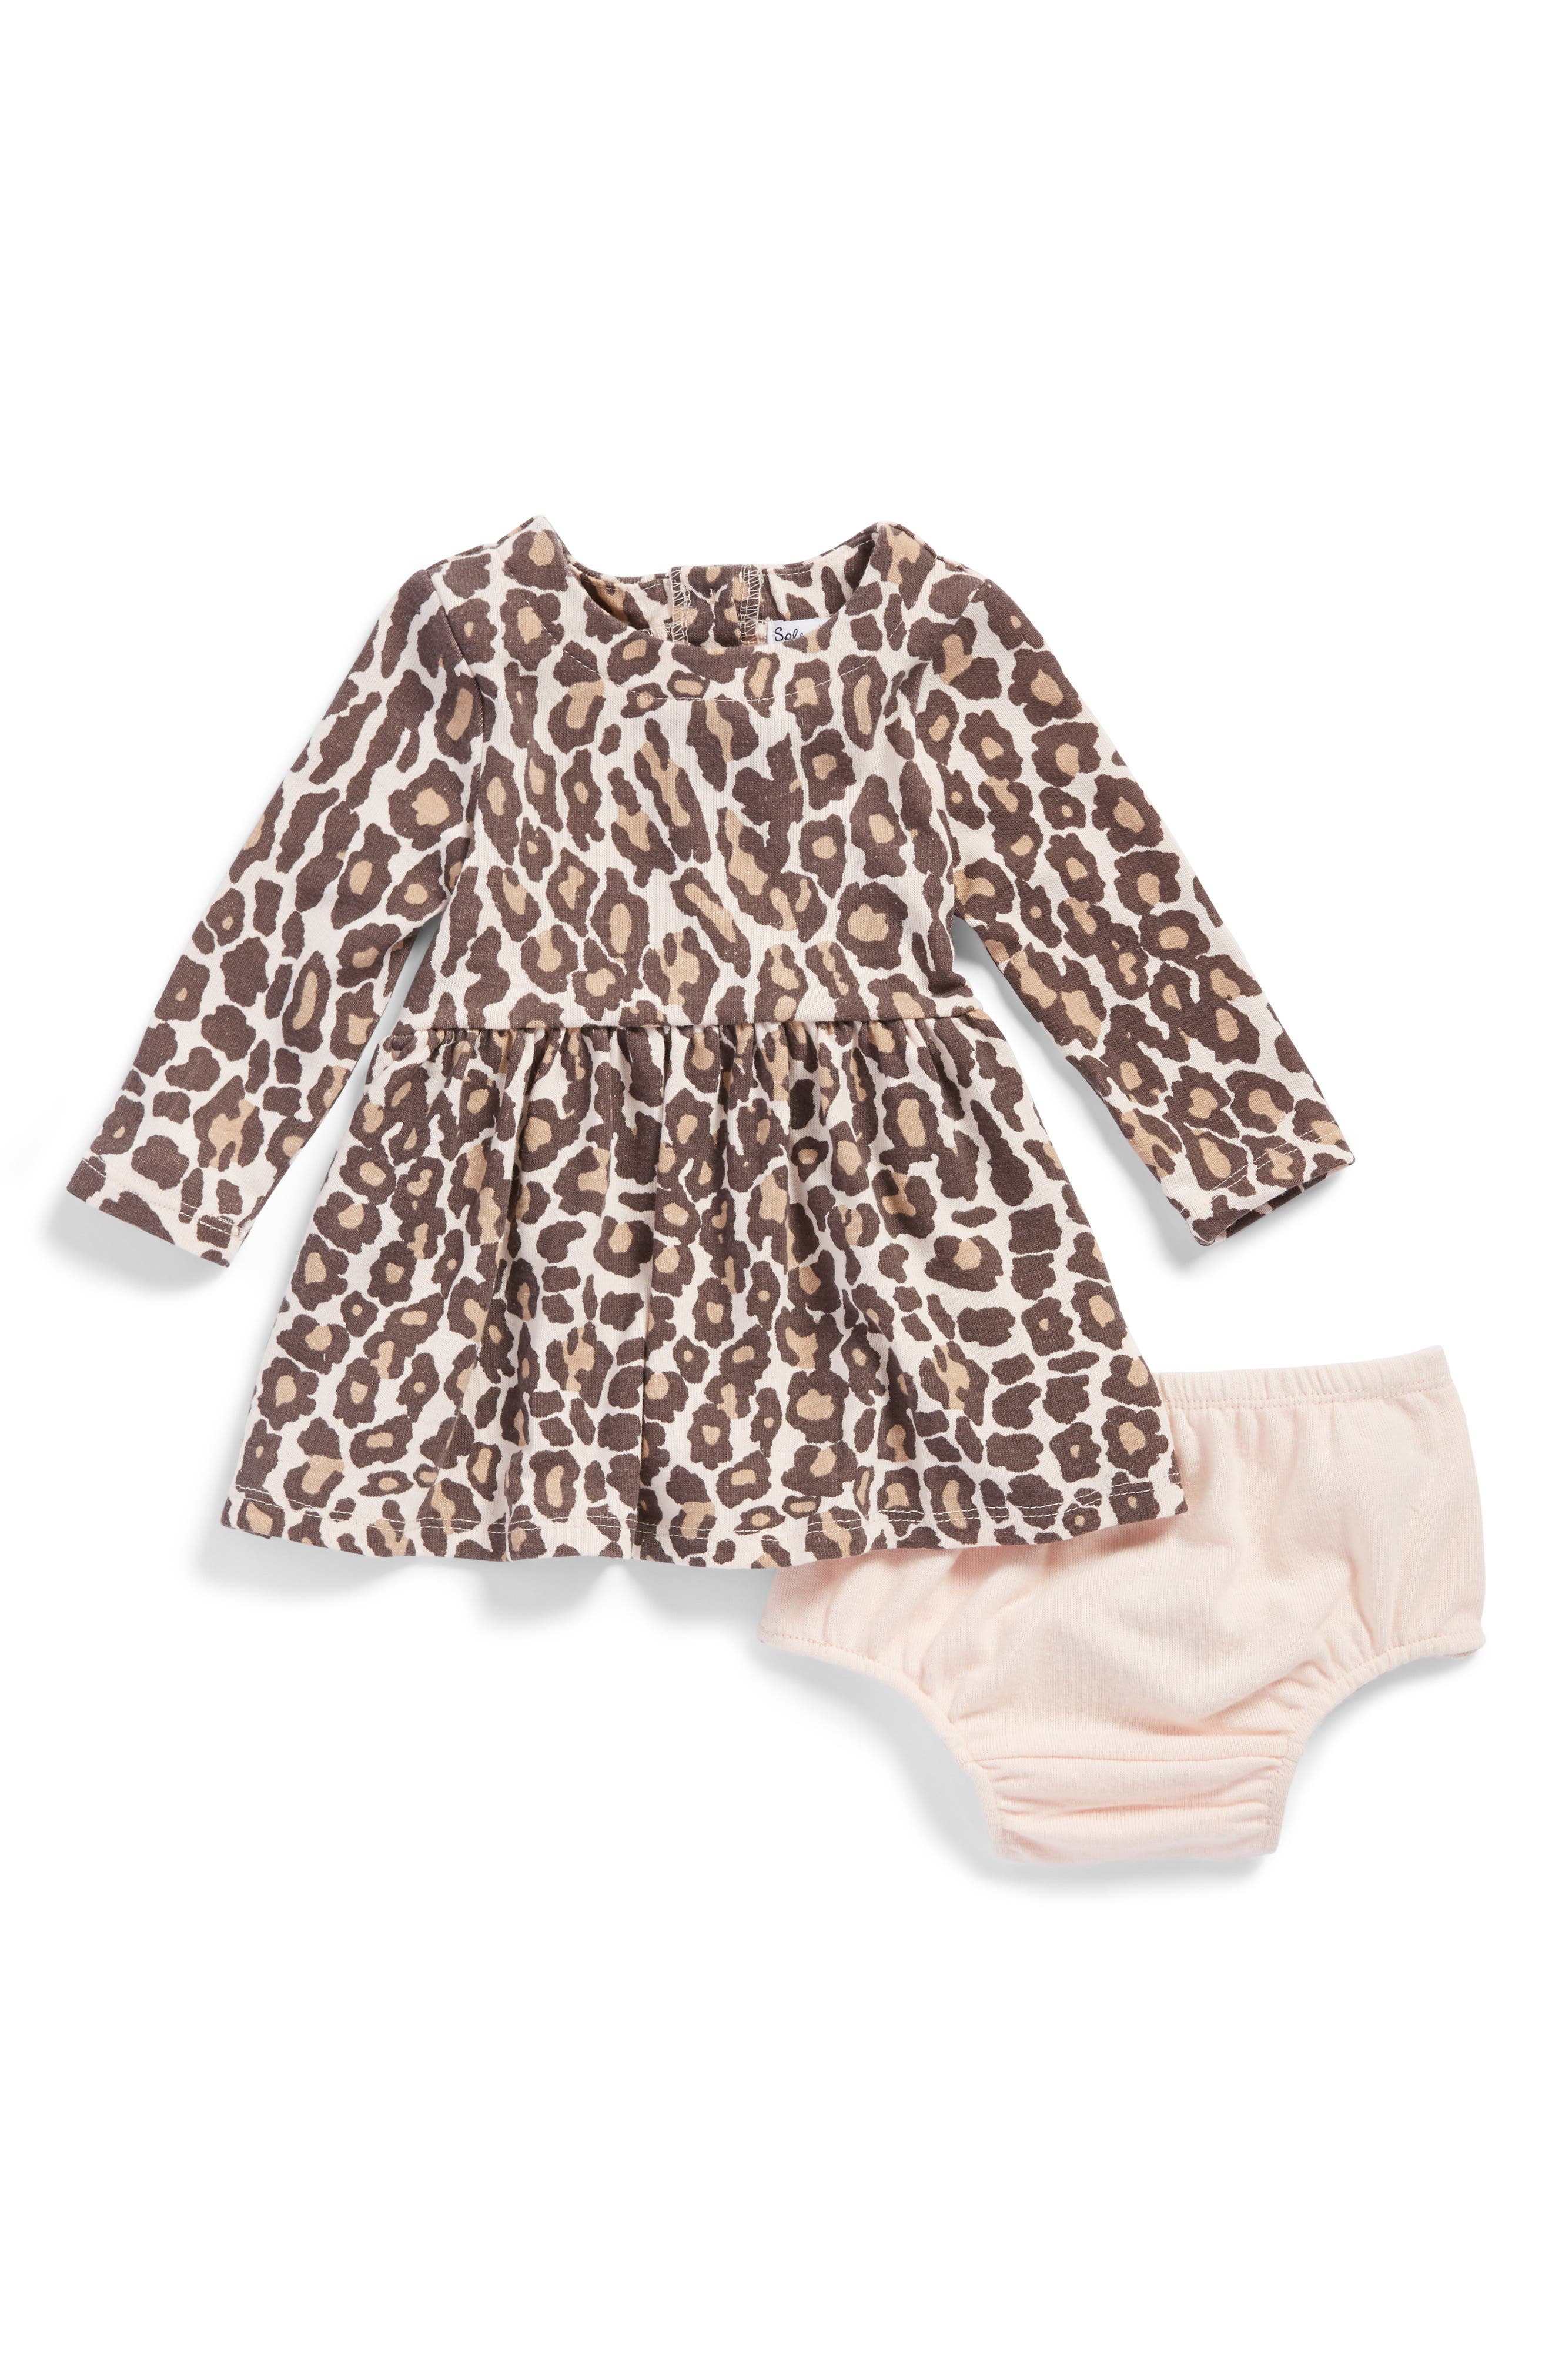 Alternate Image 1 Selected - Splendid Animal Print Knit Dress (Baby Girls)